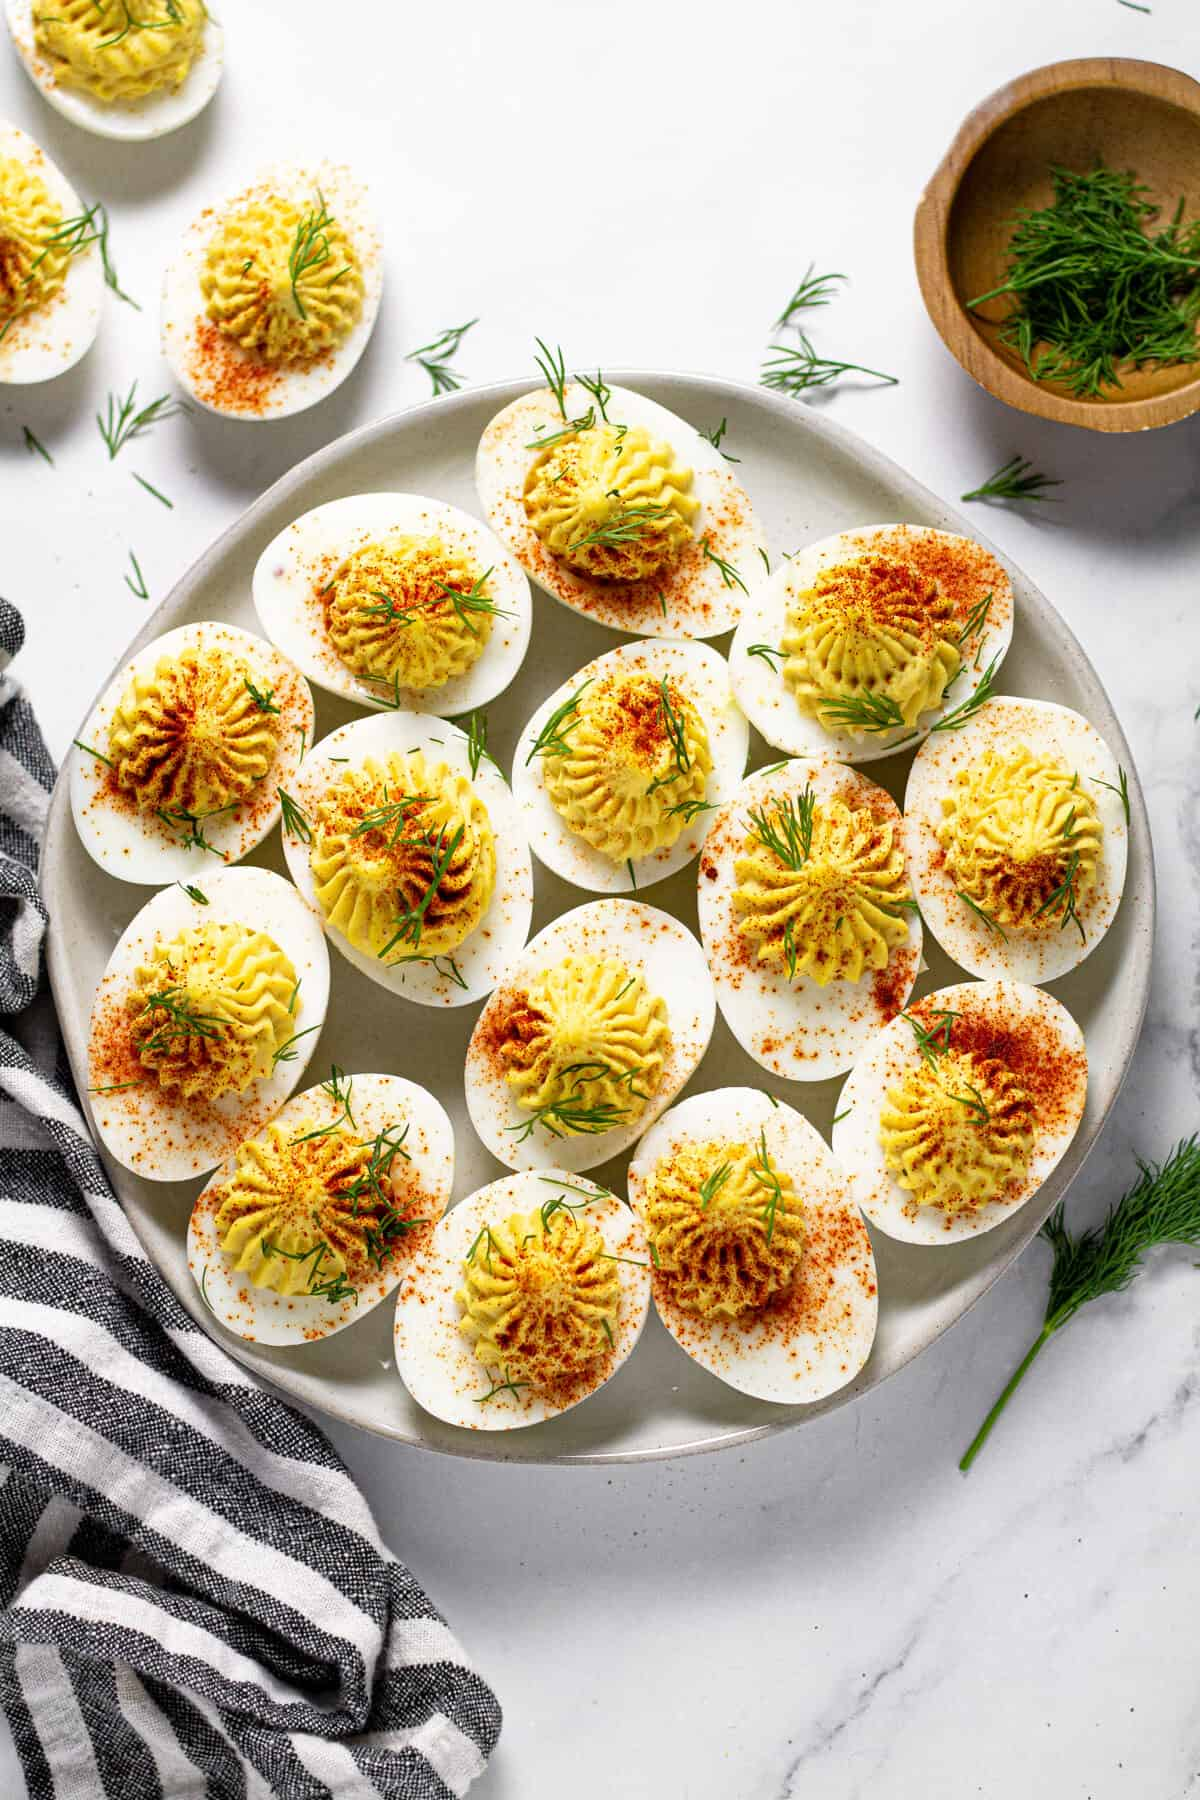 Overhead shot of a plate filled with deviled eggs on a white marble counter top